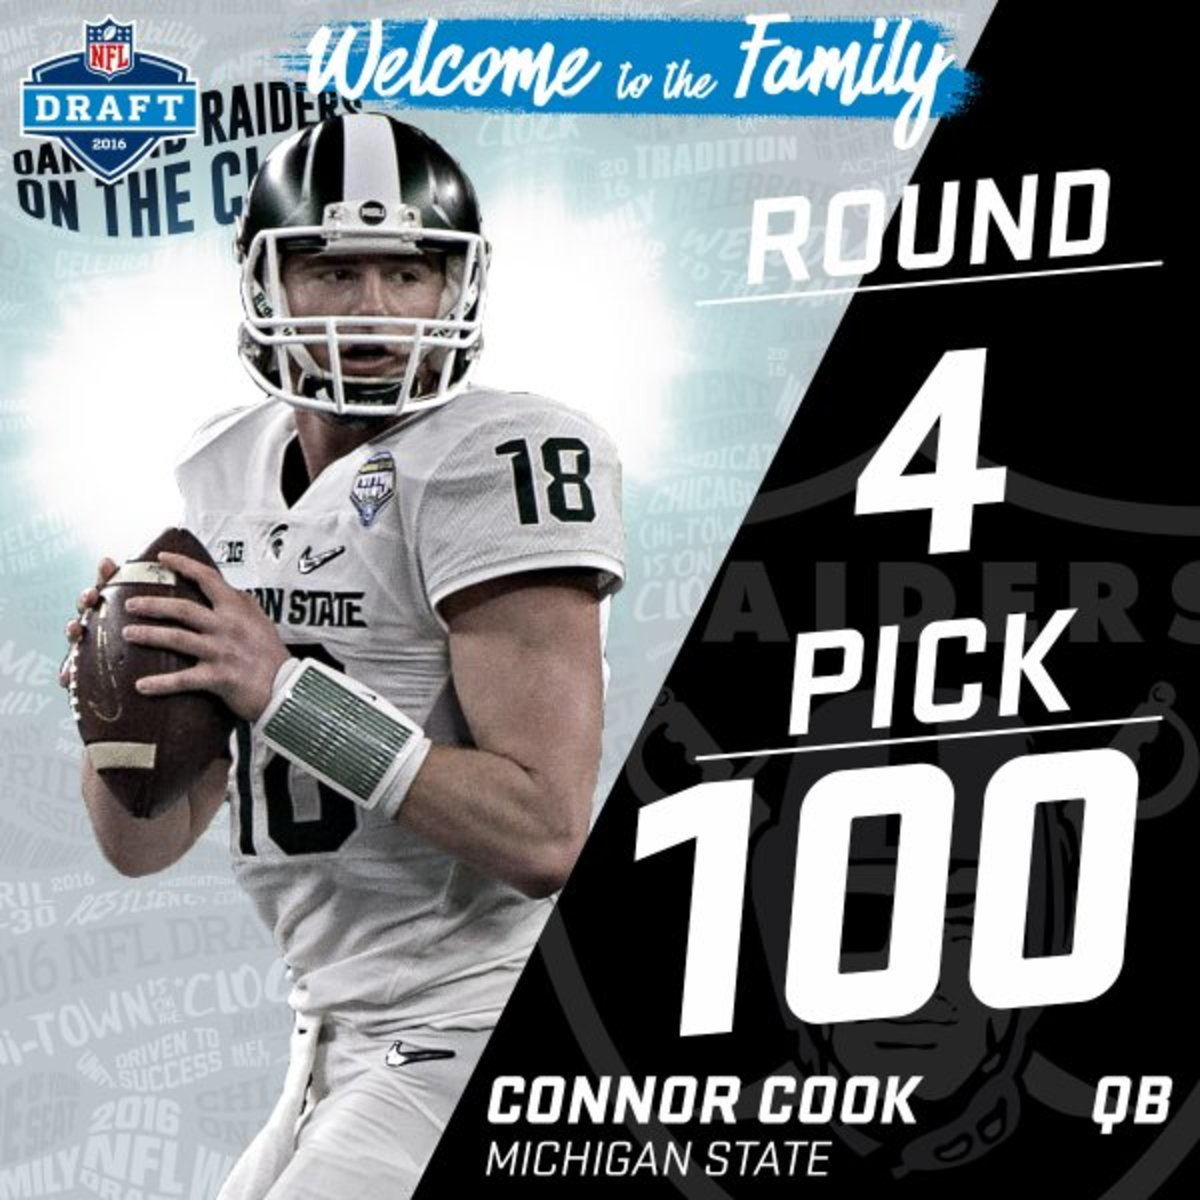 Connor Cook is an Oakland Raider.  Photo courtesy of the NFL.